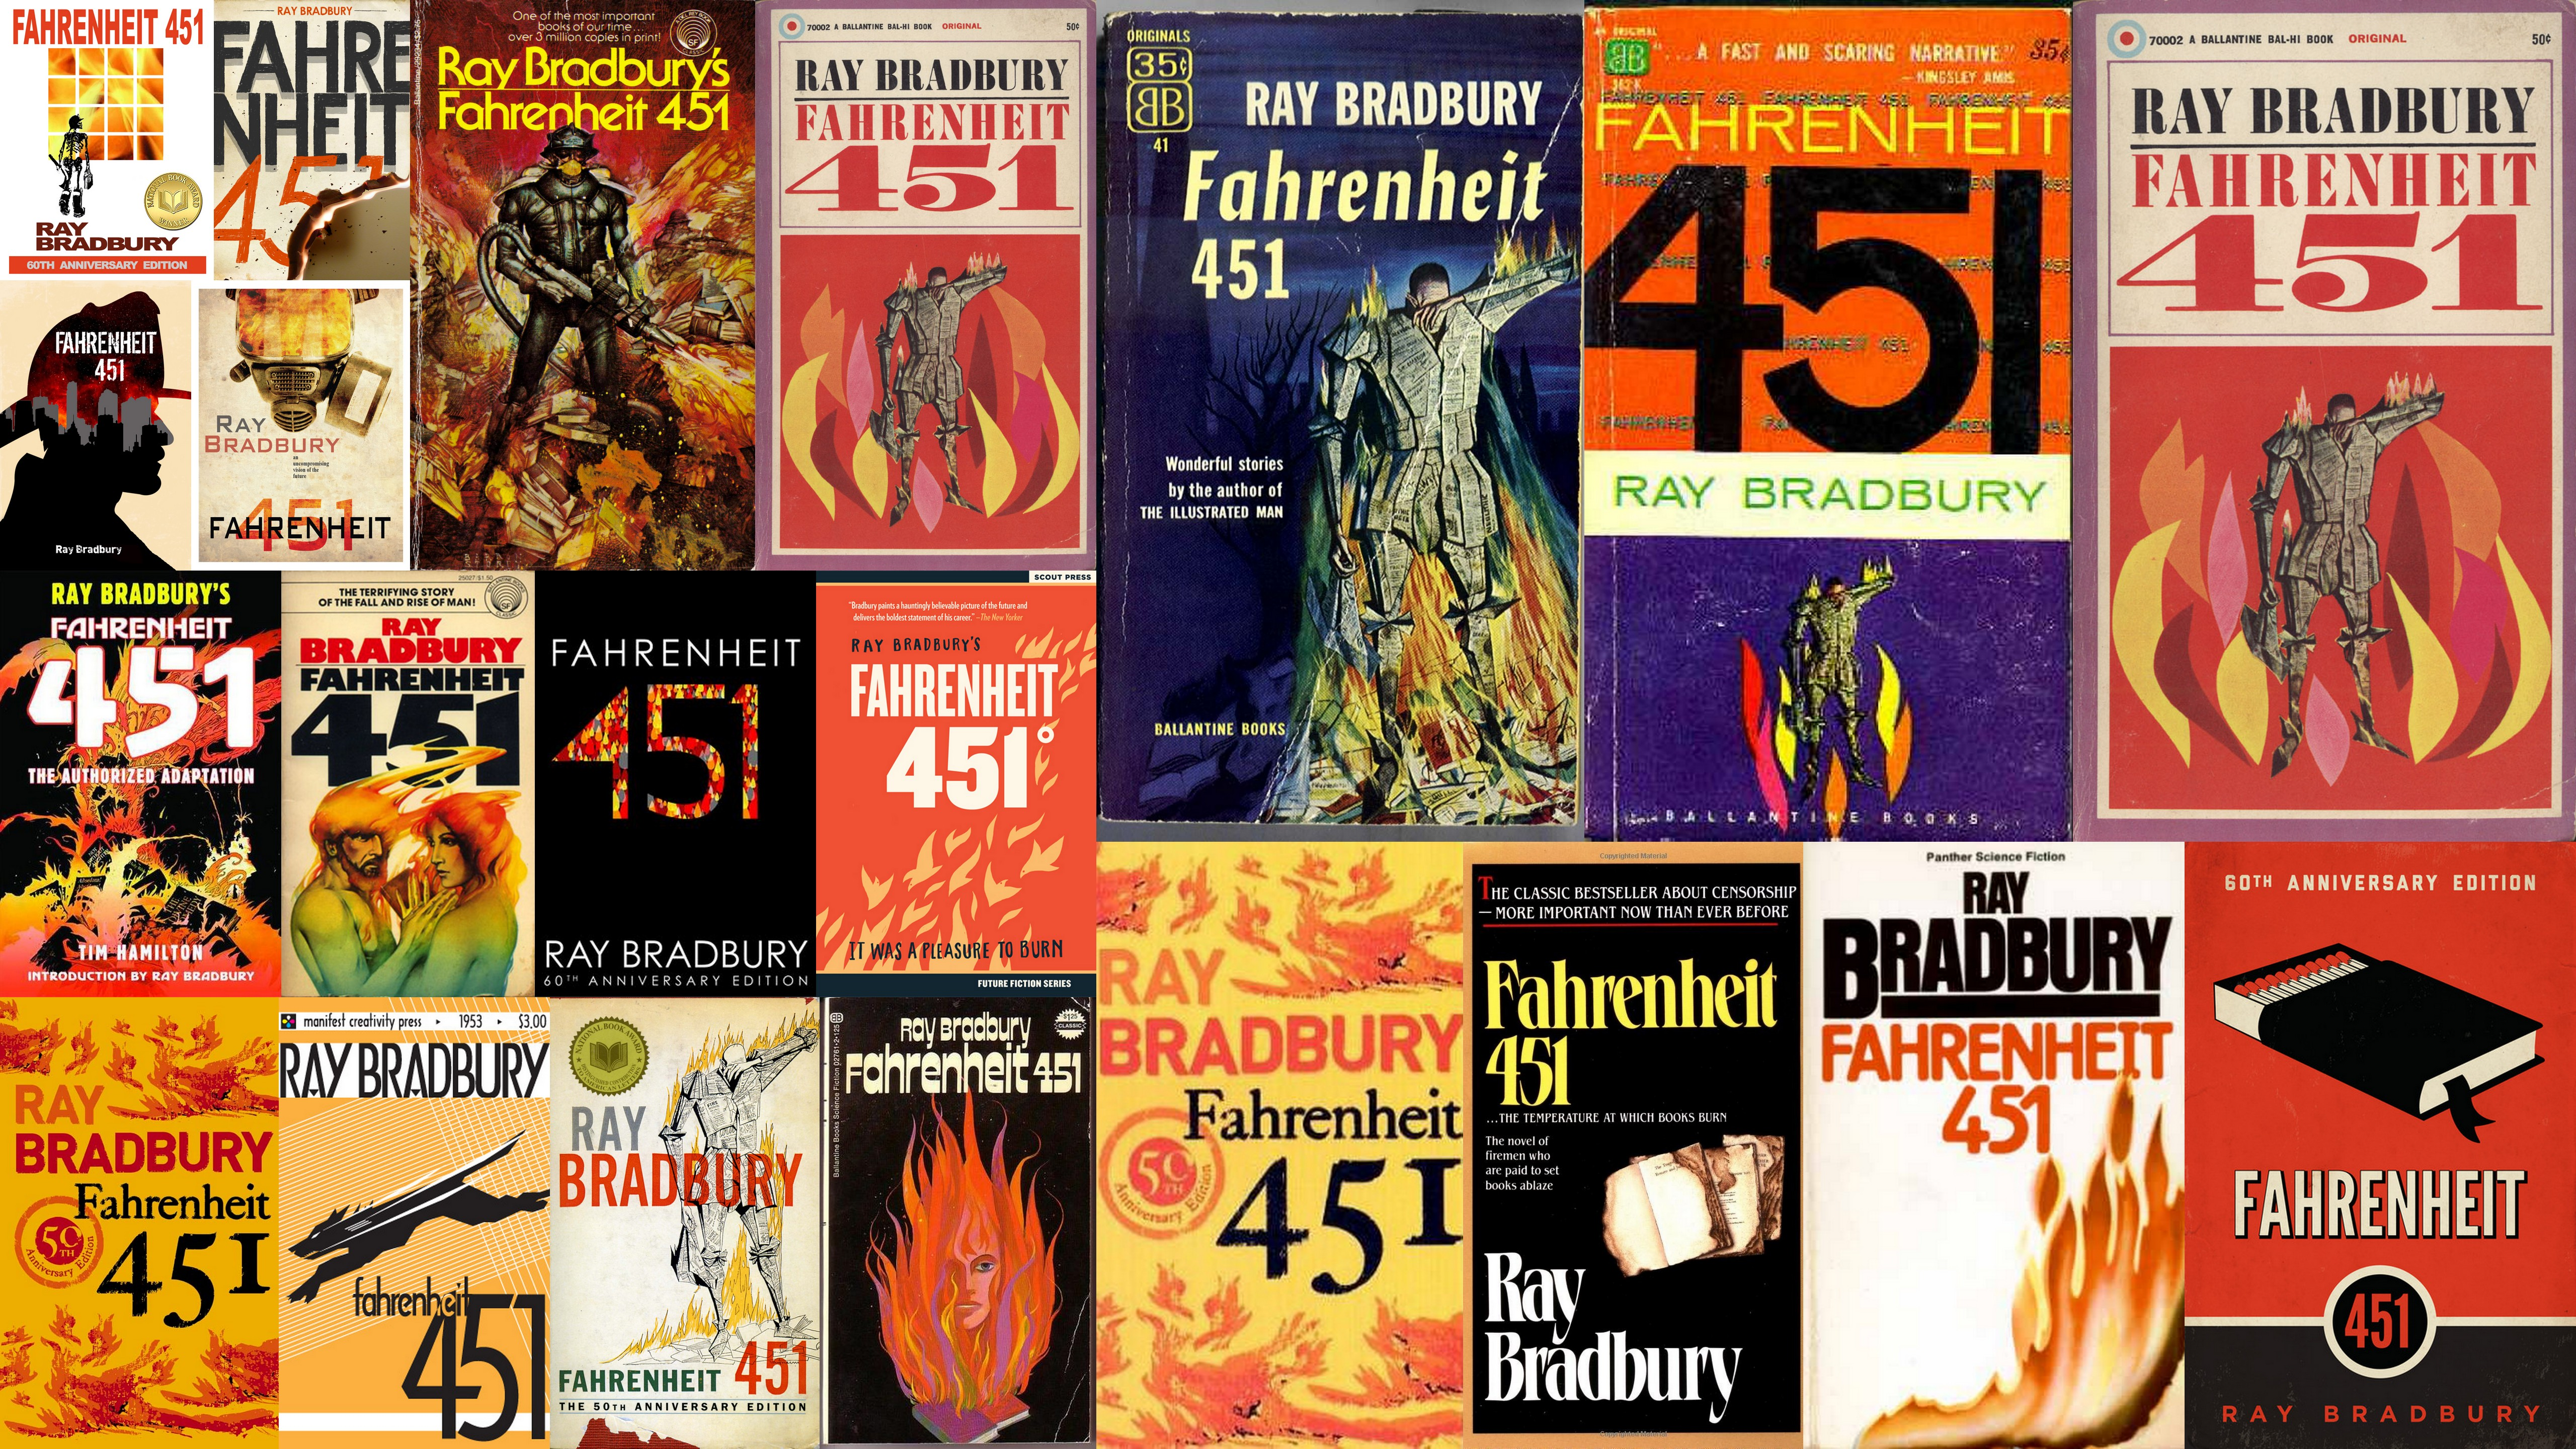 brave new world compared to fahrenheit 451 Las pel culas de bandas juveniles son ya un g nero brave new world vs farenheit 451 en si mismas comparison fahrenheit brave new essay world 451 and high school dropout essay name how to write a long persuasive essay federalist vs anti brave new world vs farenheit 451 federalist essay xml.